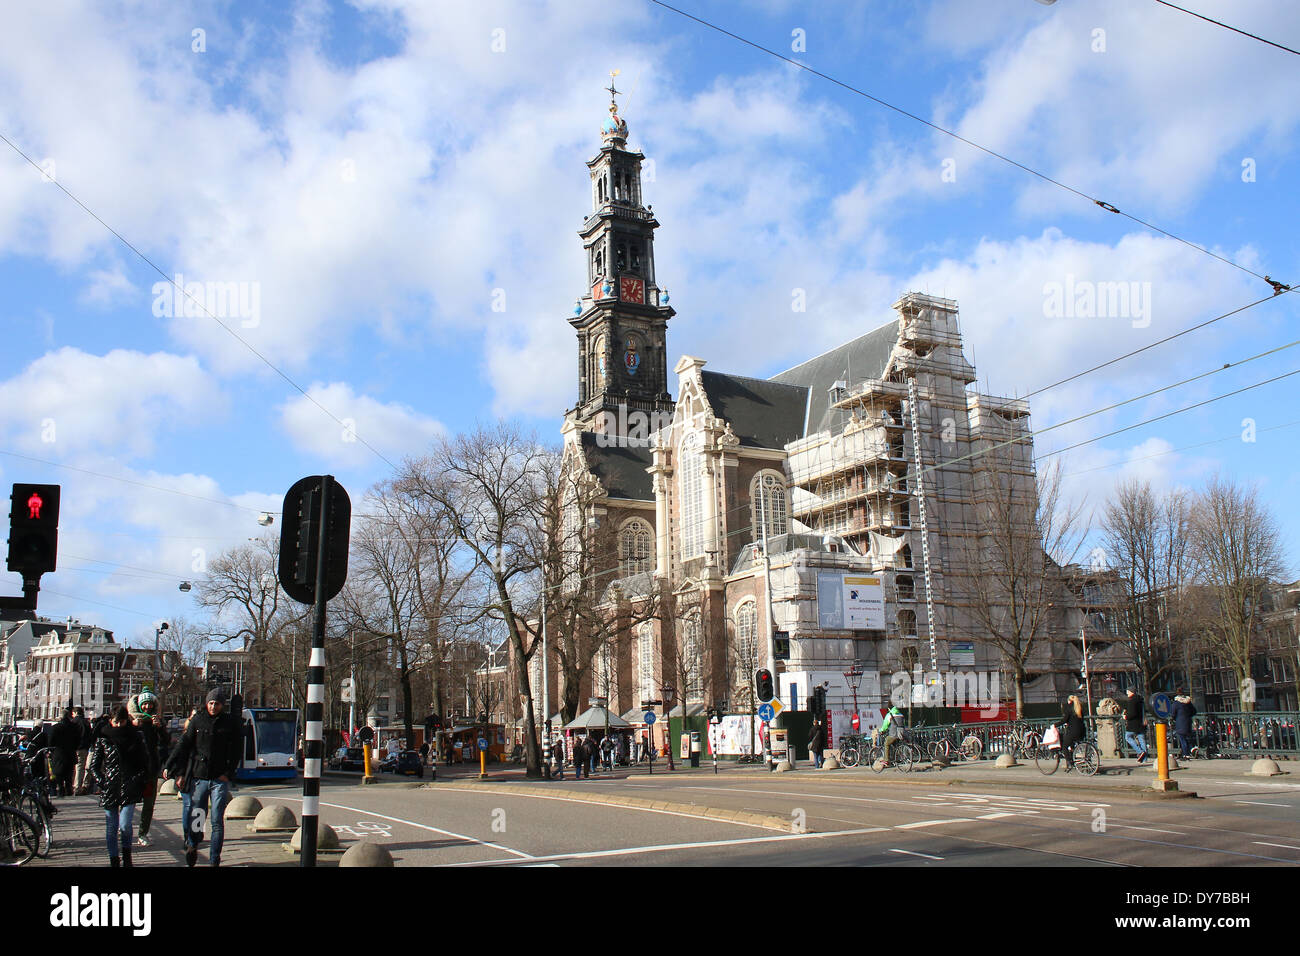 Westerkerk ('Western church'), a  Dutch Protestant church,  next to Amsterdam's Jordaan district, on Prinsengracht canal bank - Stock Image